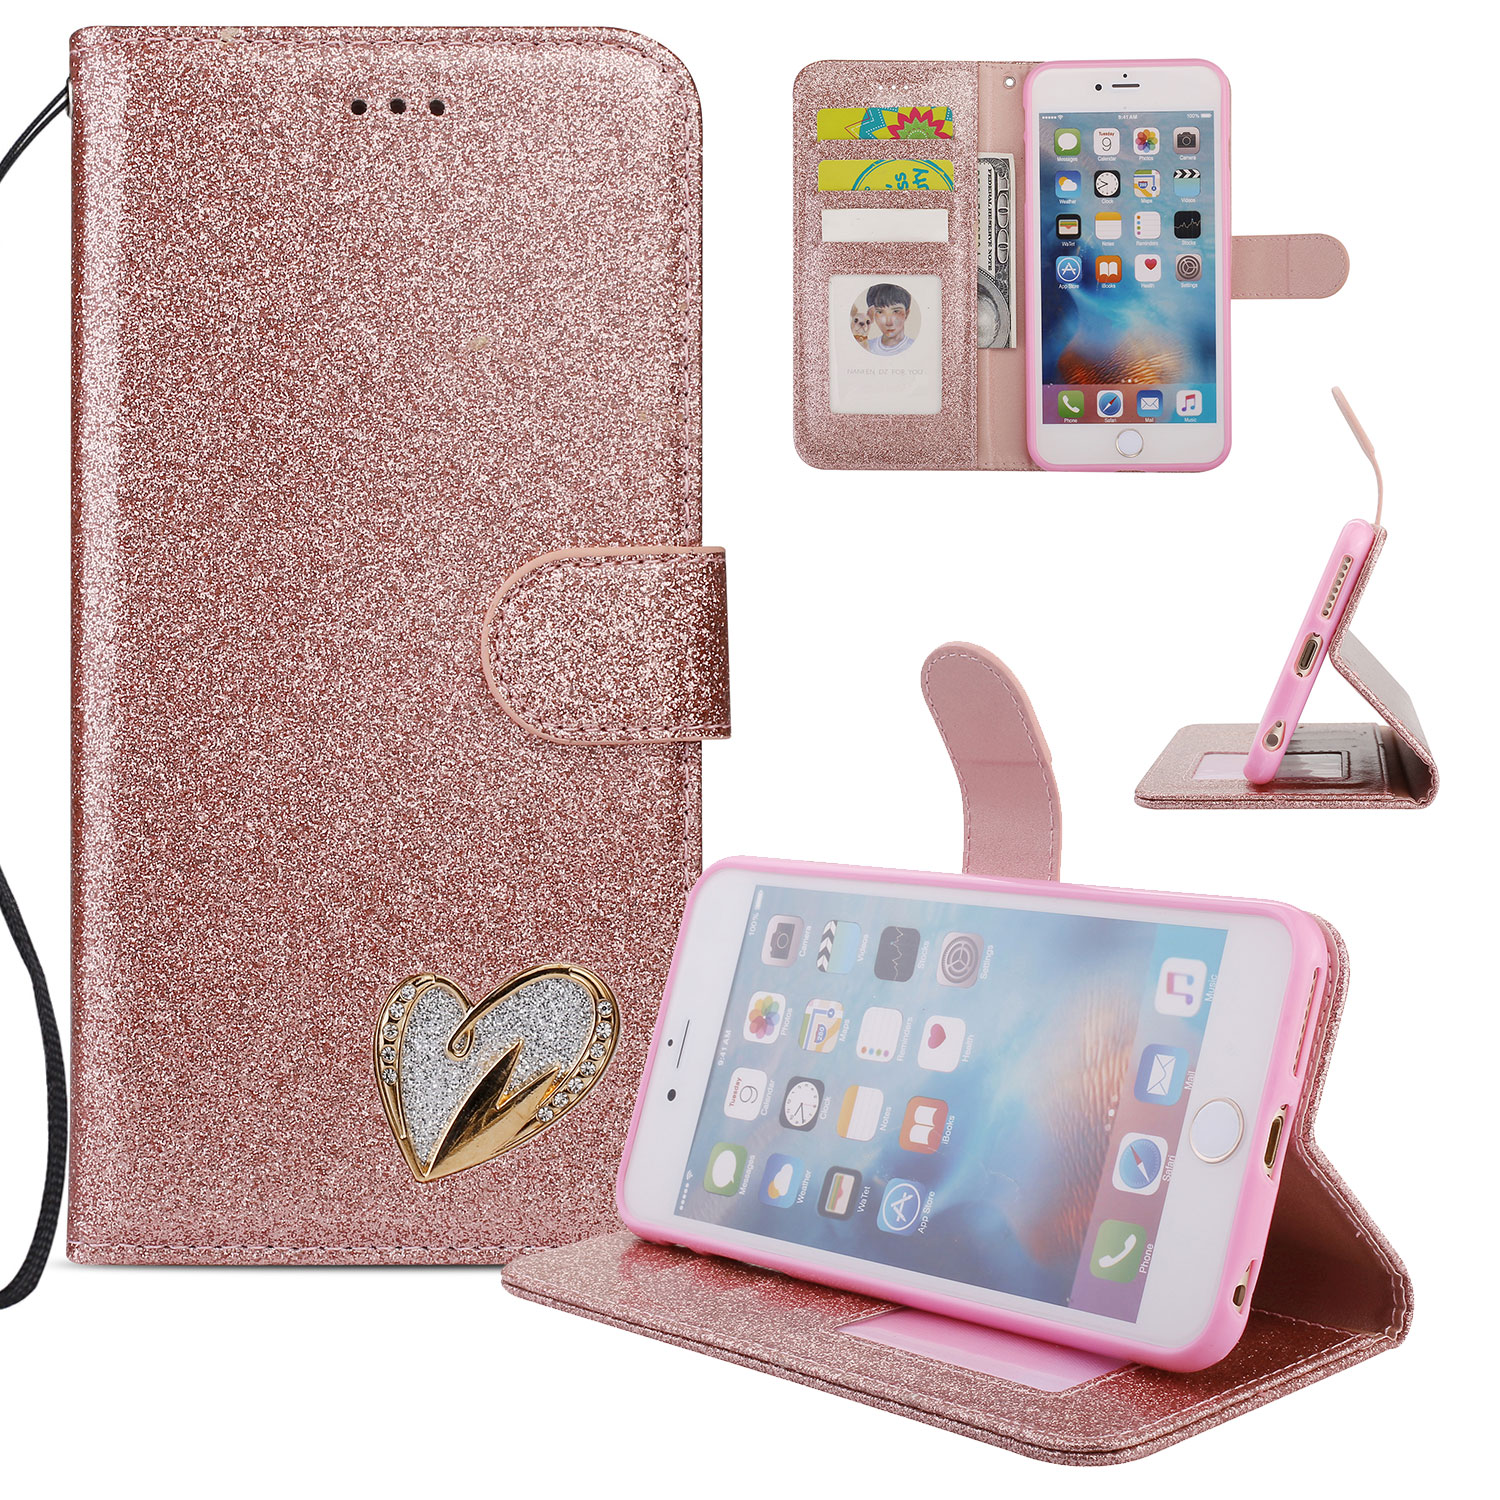 iPhone 6S Plus Case Wallet, iPhone 6 Plus Case, Allytech Glitter Folio Kickstand with Wristlet Lanyard Shiny Sparkle Luxury Bling Card Slots Slim Cover for Apple iPhone 6 Plus/ 6S Plus (Rosrgold)